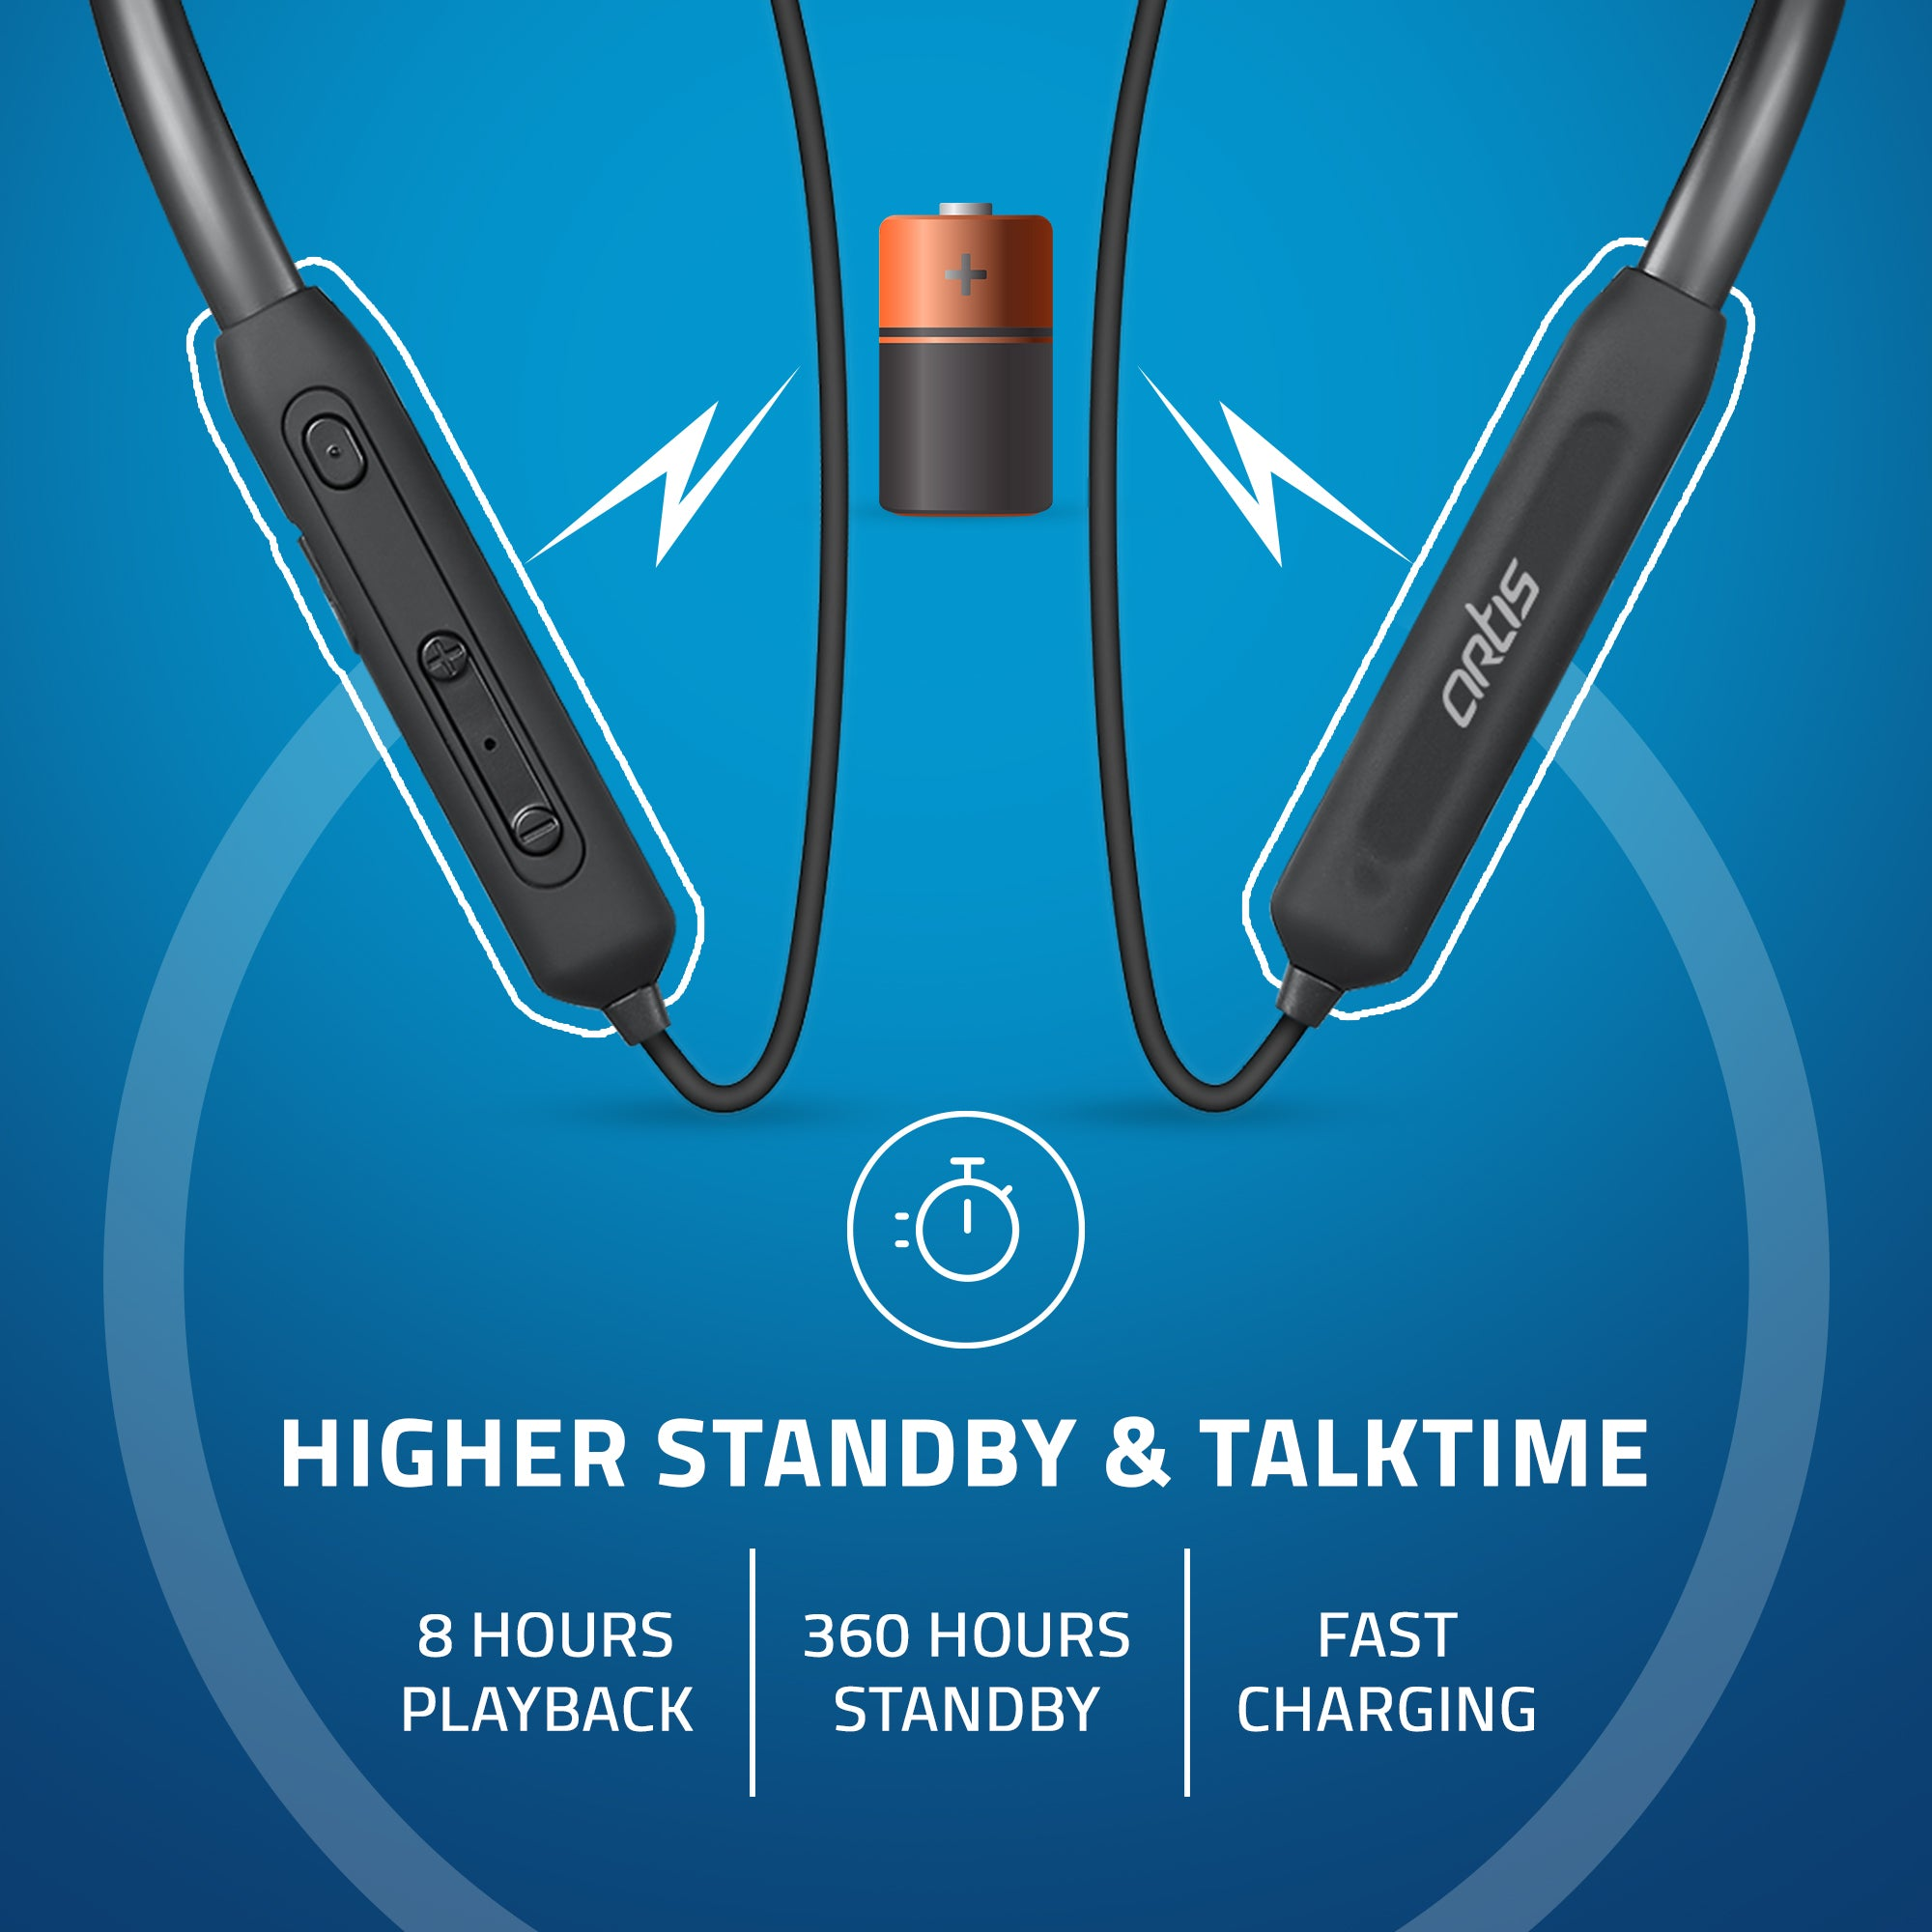 BE310M Artis Bluetooth Wireless Neckband Earphone with Higher Standby & Talktime